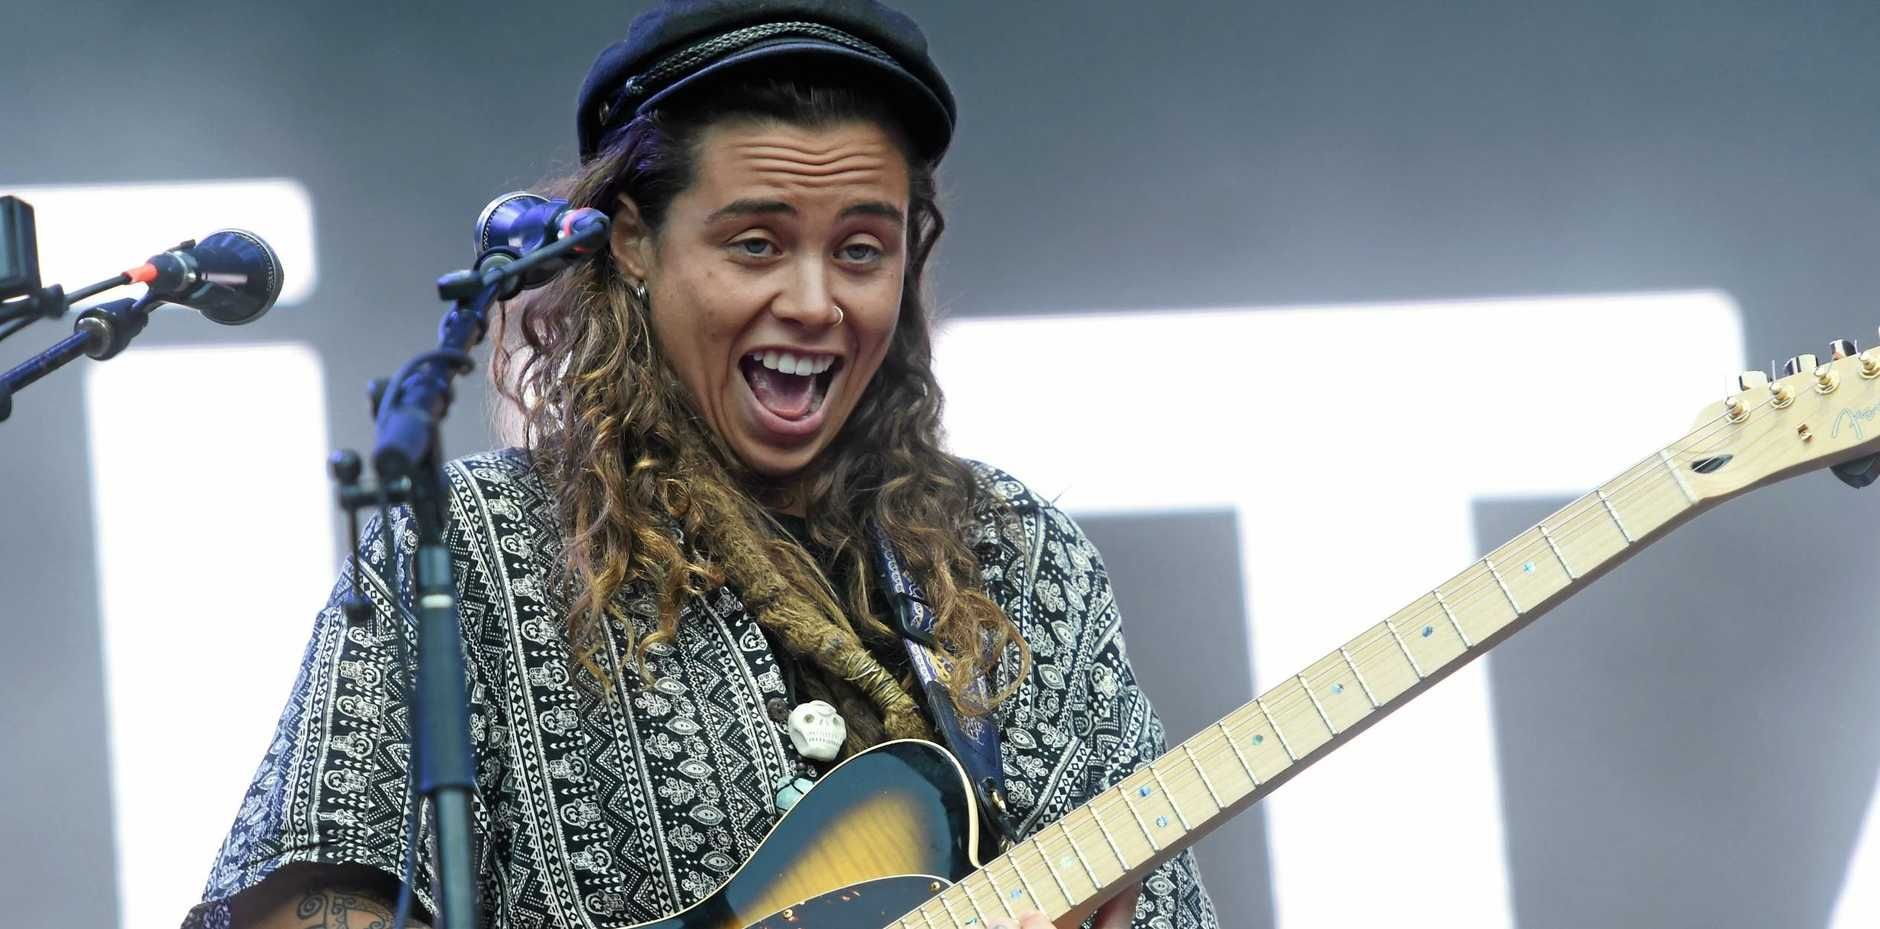 ON STAGE: Tash Sultana plays the main stage at Splendour in the Grass 2017.